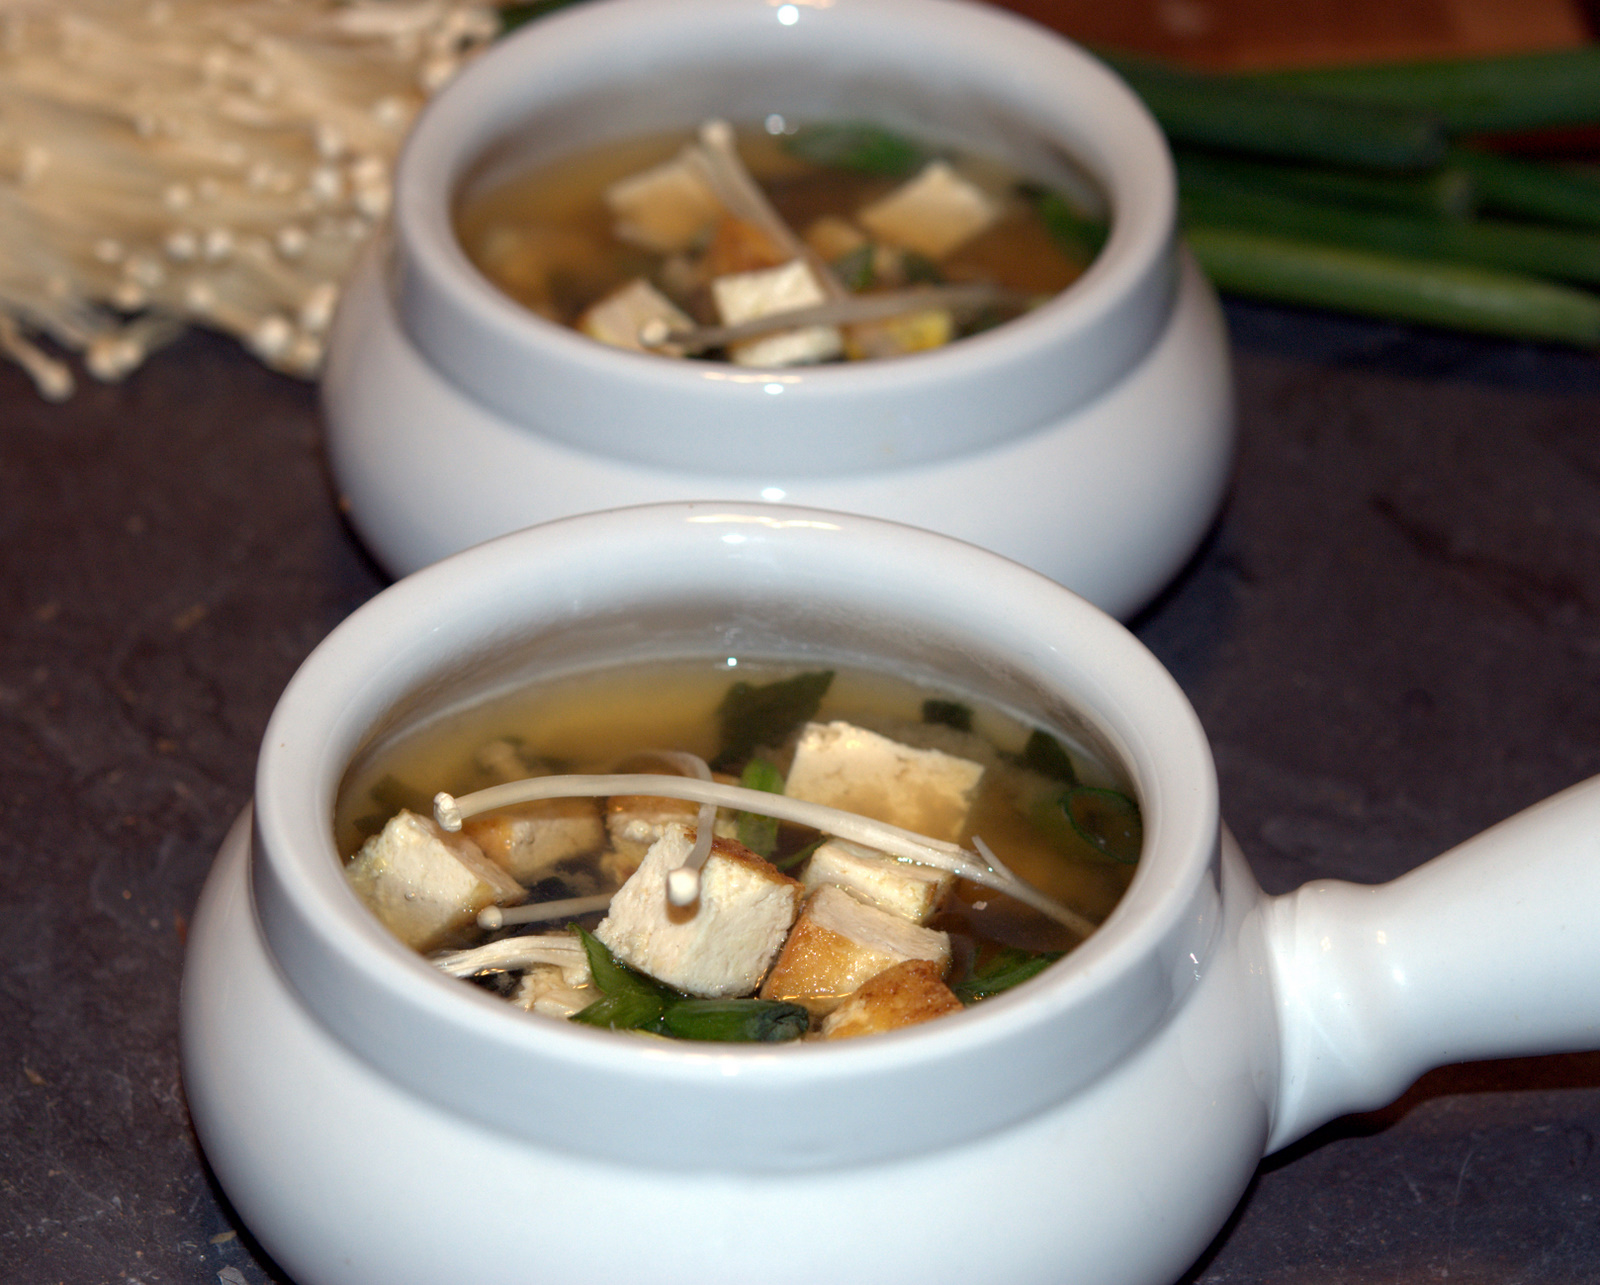 Wild Greens and Sardines : Miso Soup with Enoki Mushrooms and Tofu